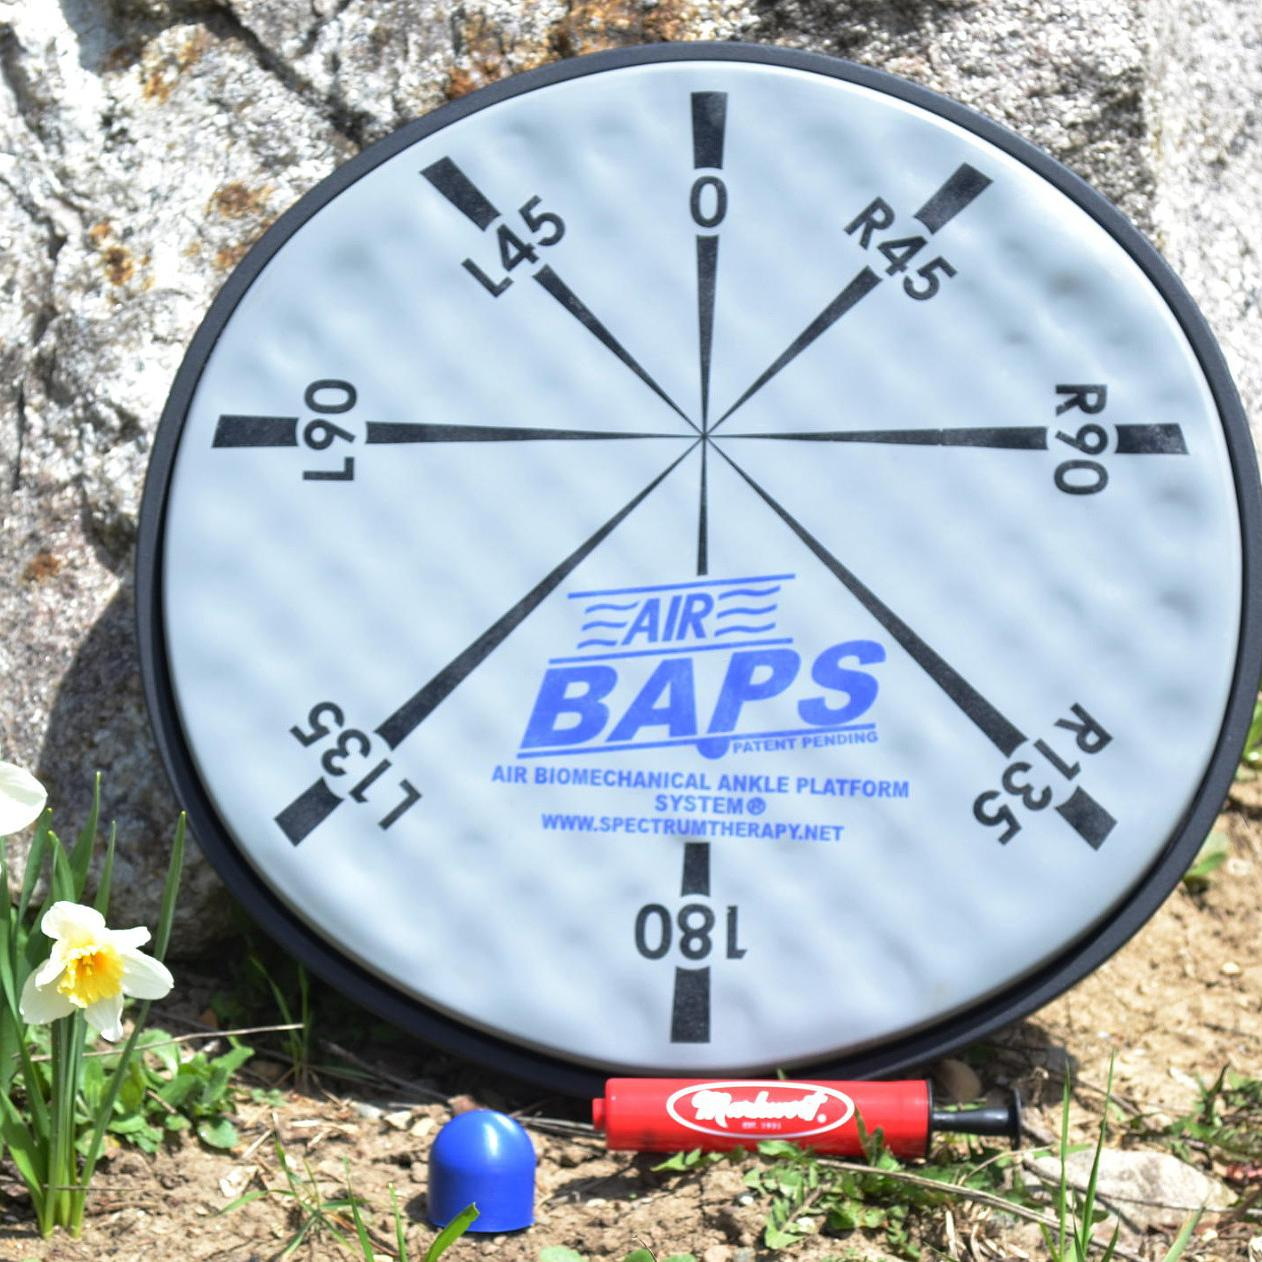 The AIR BAPS Board